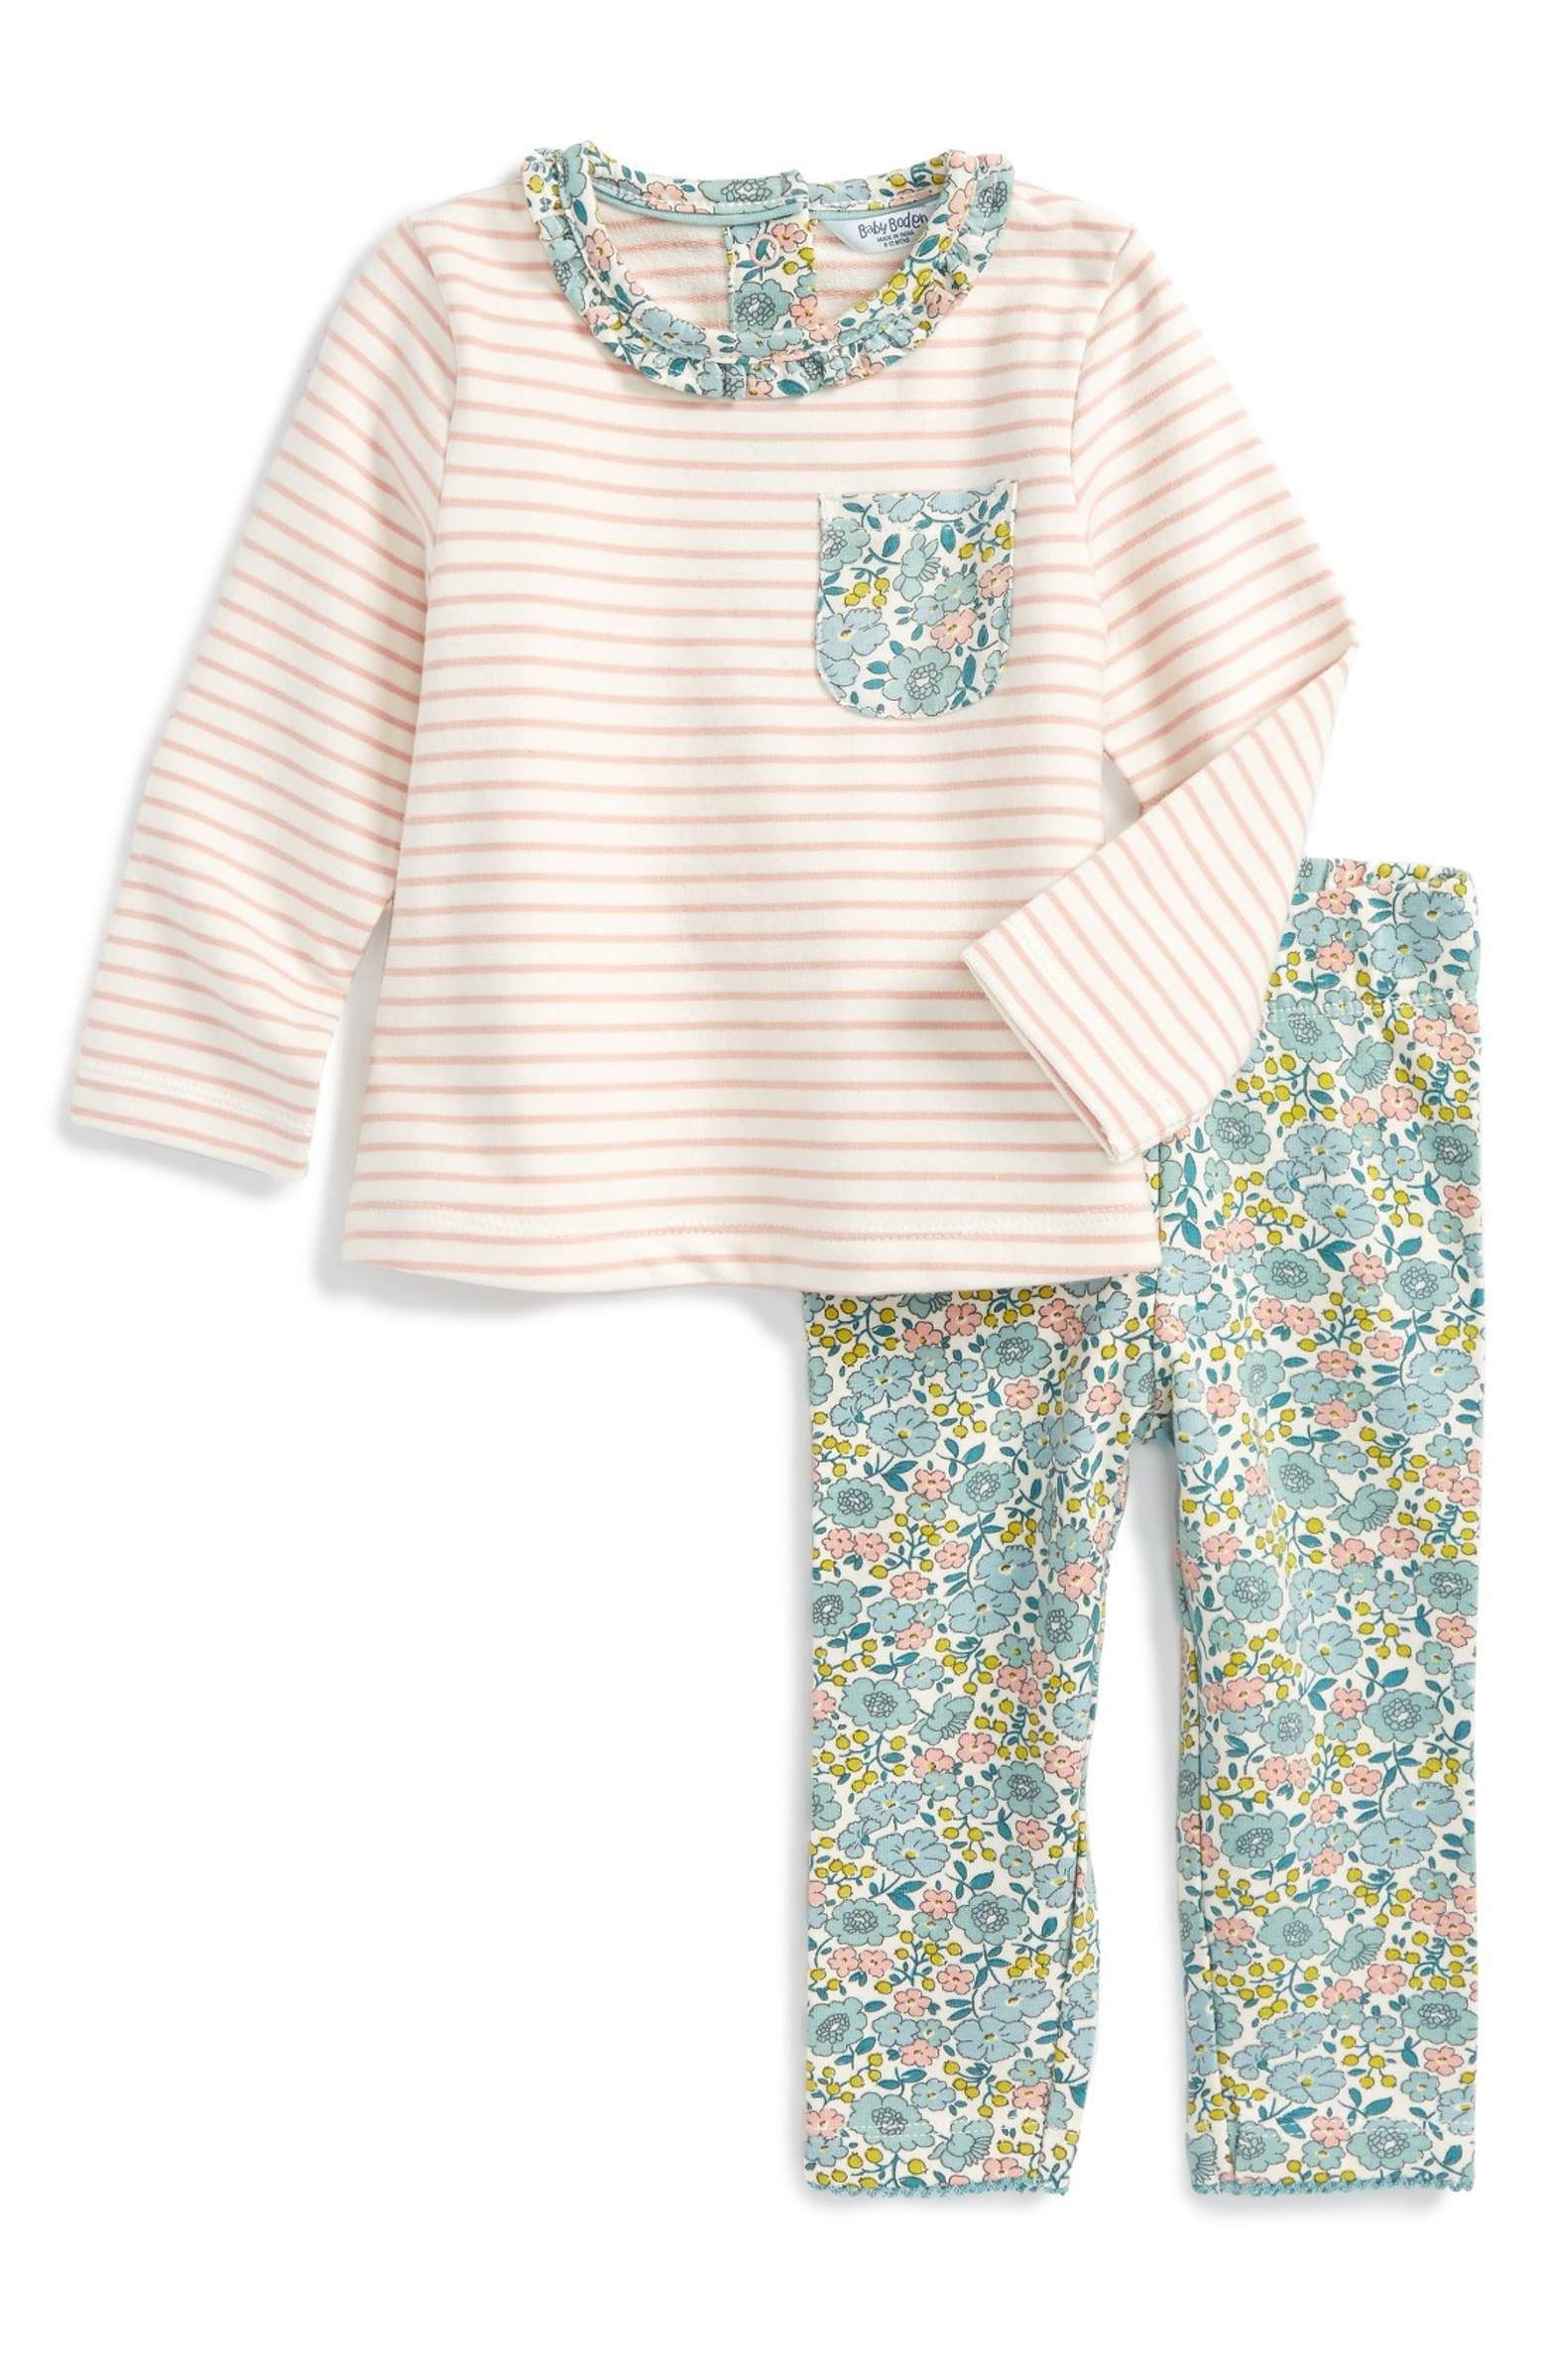 Main Image - Mini Boden Jersey Play Shirt & Leggings Set (Baby Girls & Toddler Girls)